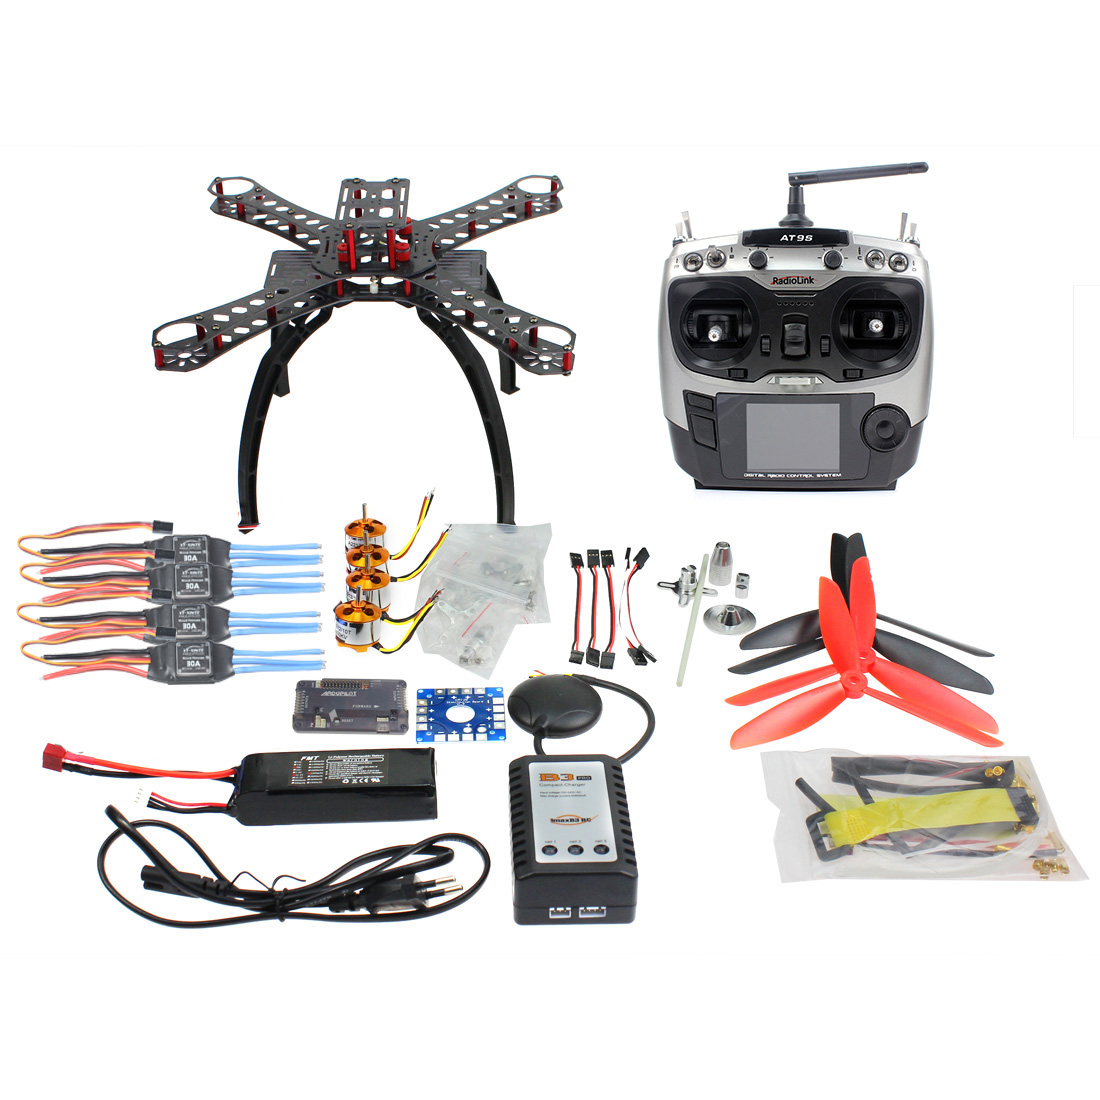 RC DIY Full Kit Carbon Fiber Frame MulticopterGPS Drone FPV Radiolink AT9 Transmitter APM2 8 1400KV